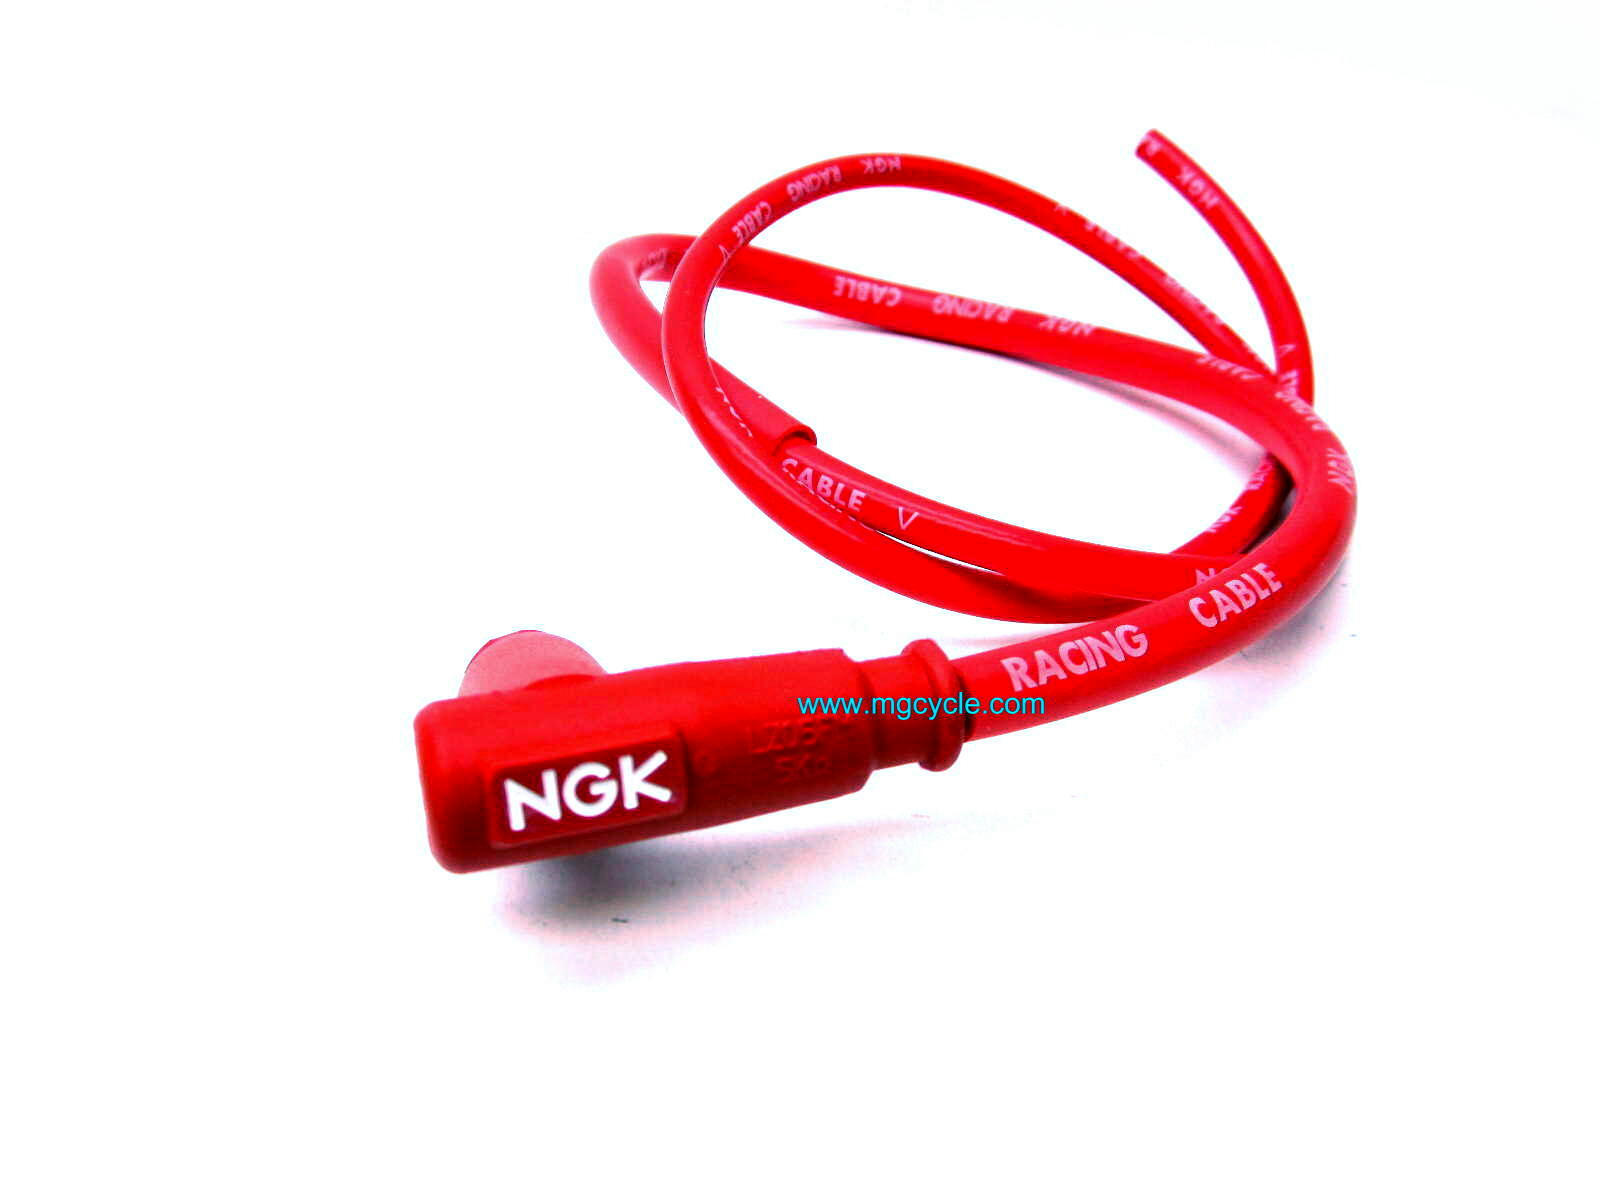 NGK RACING CABLE spark plug wire and resistor cap